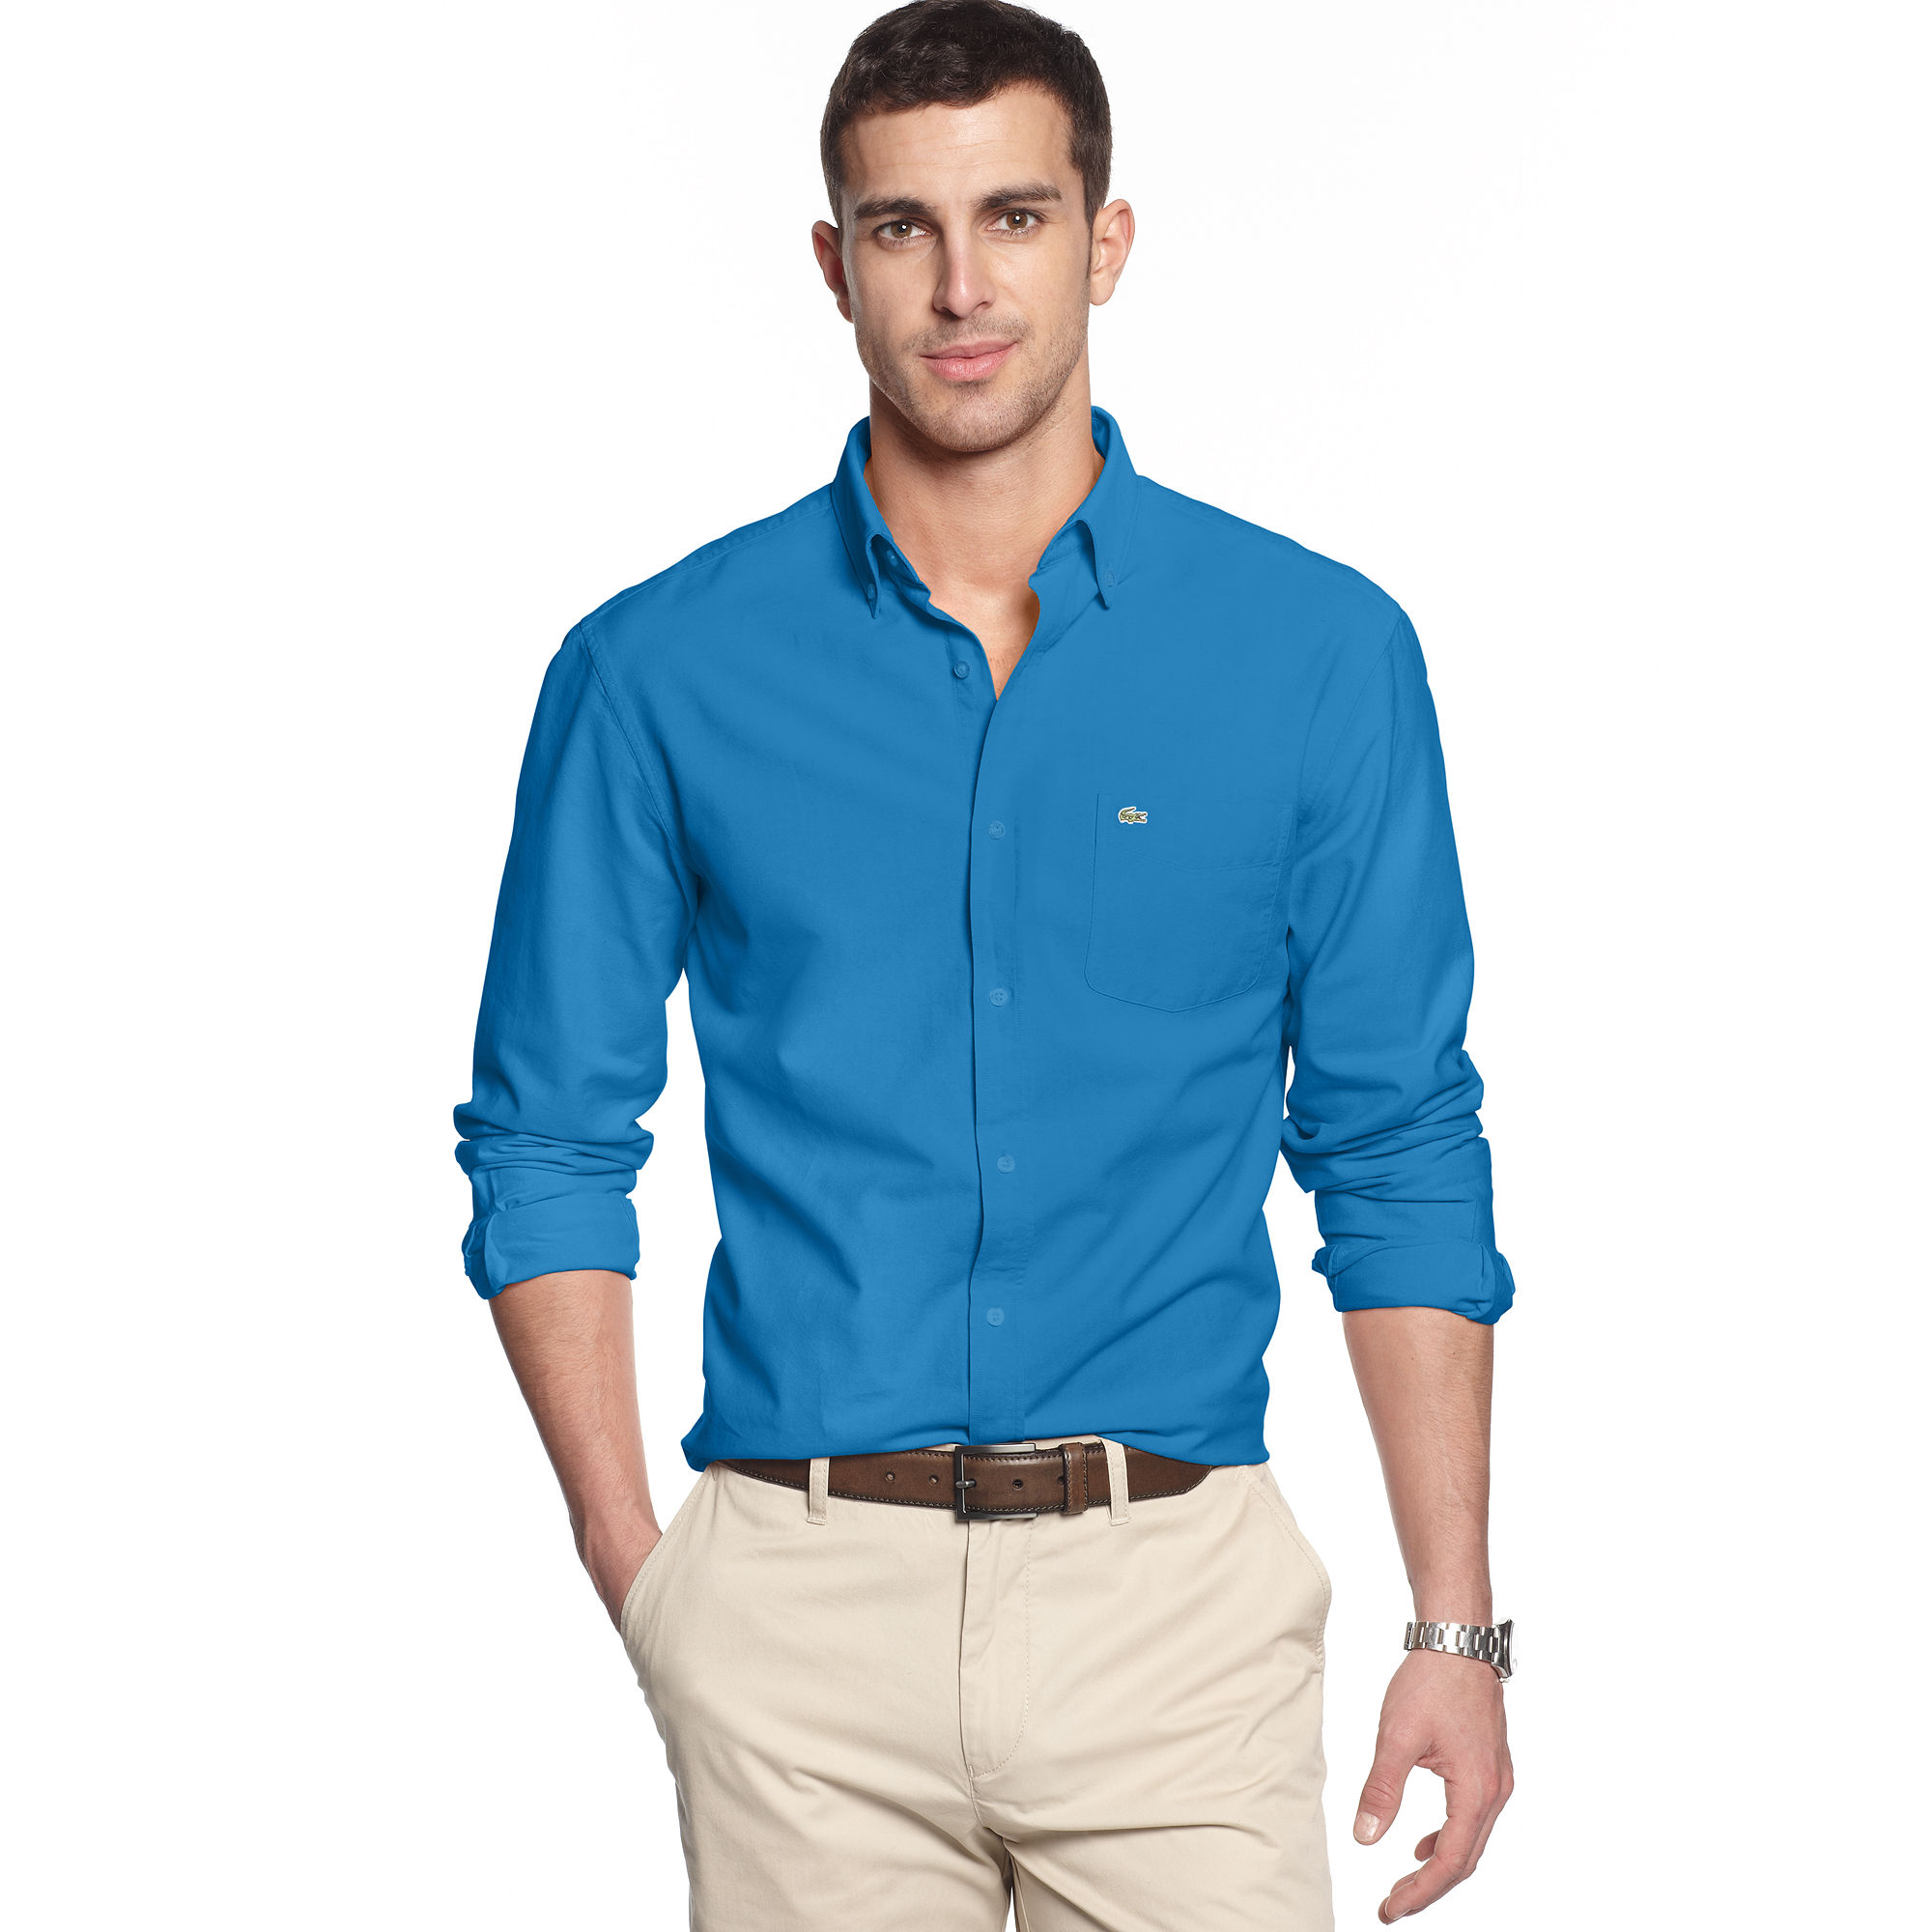 Regular Fit Shirts gallery IMDOPQH